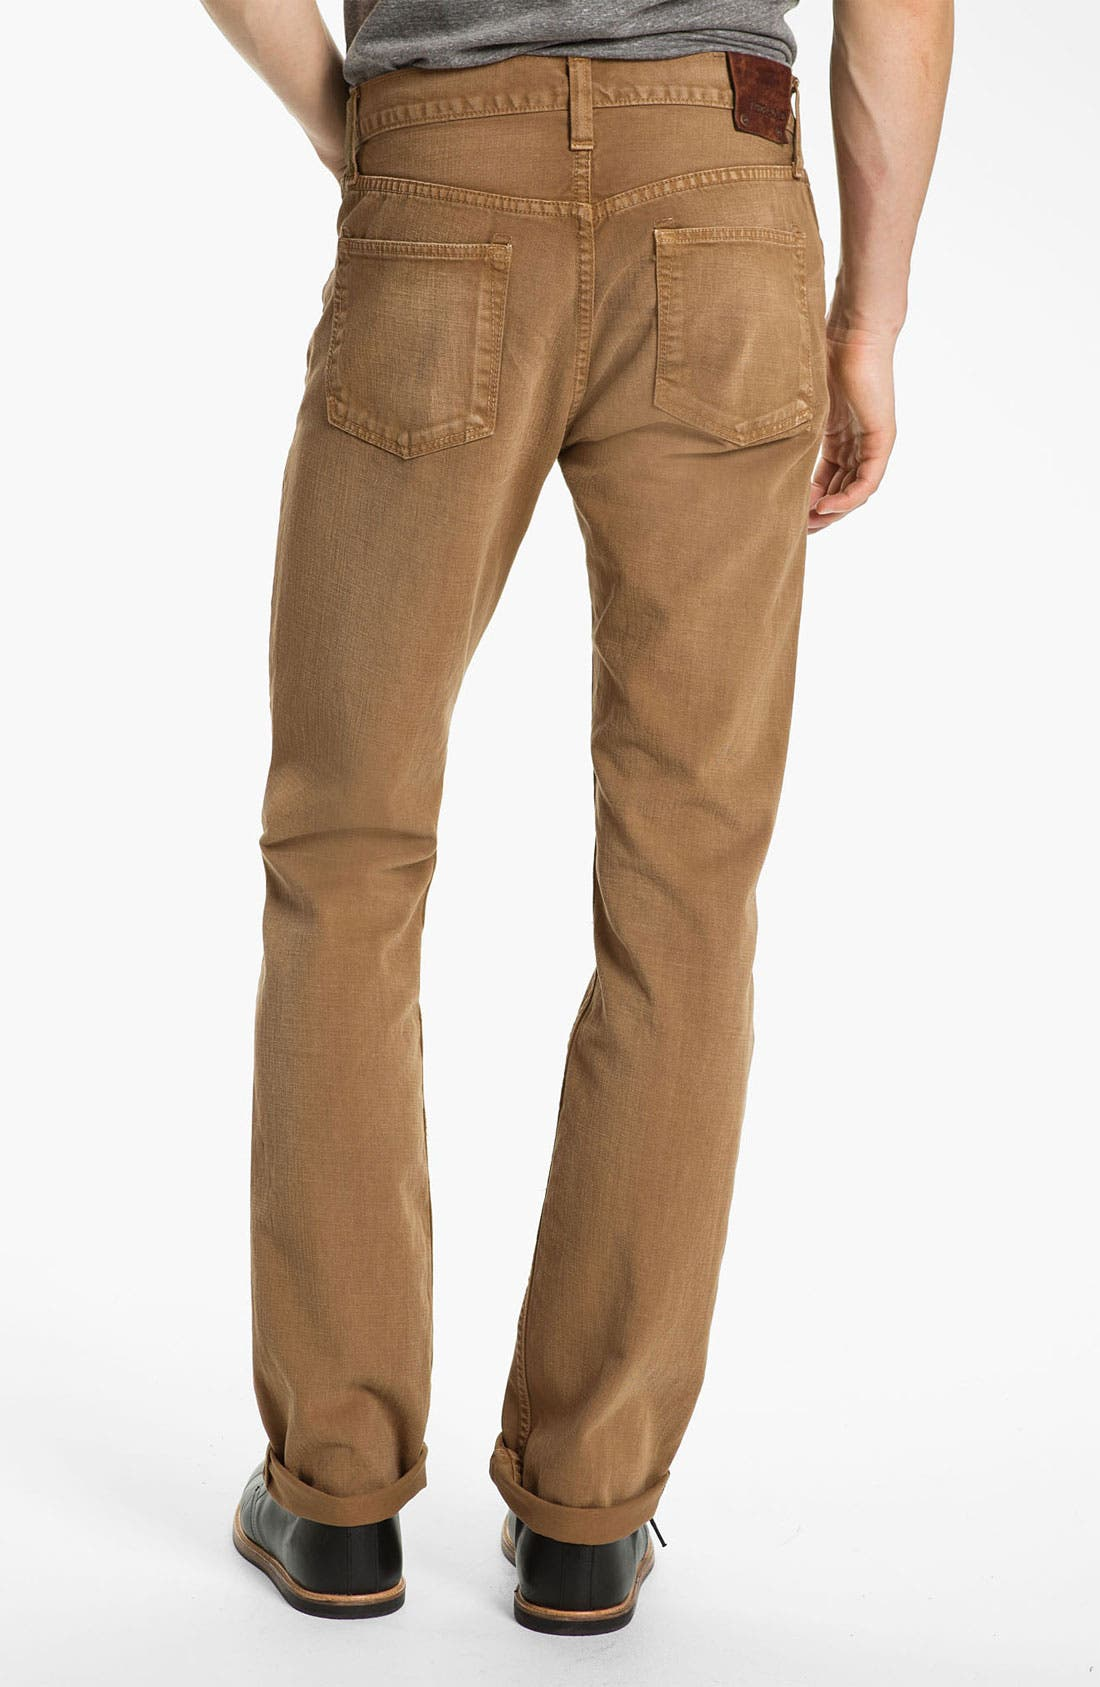 Alternate Image 1 Selected - J Brand 'Kane' Slim Straight Leg Jeans (Weathered Timber) (Save Now through 12/9)